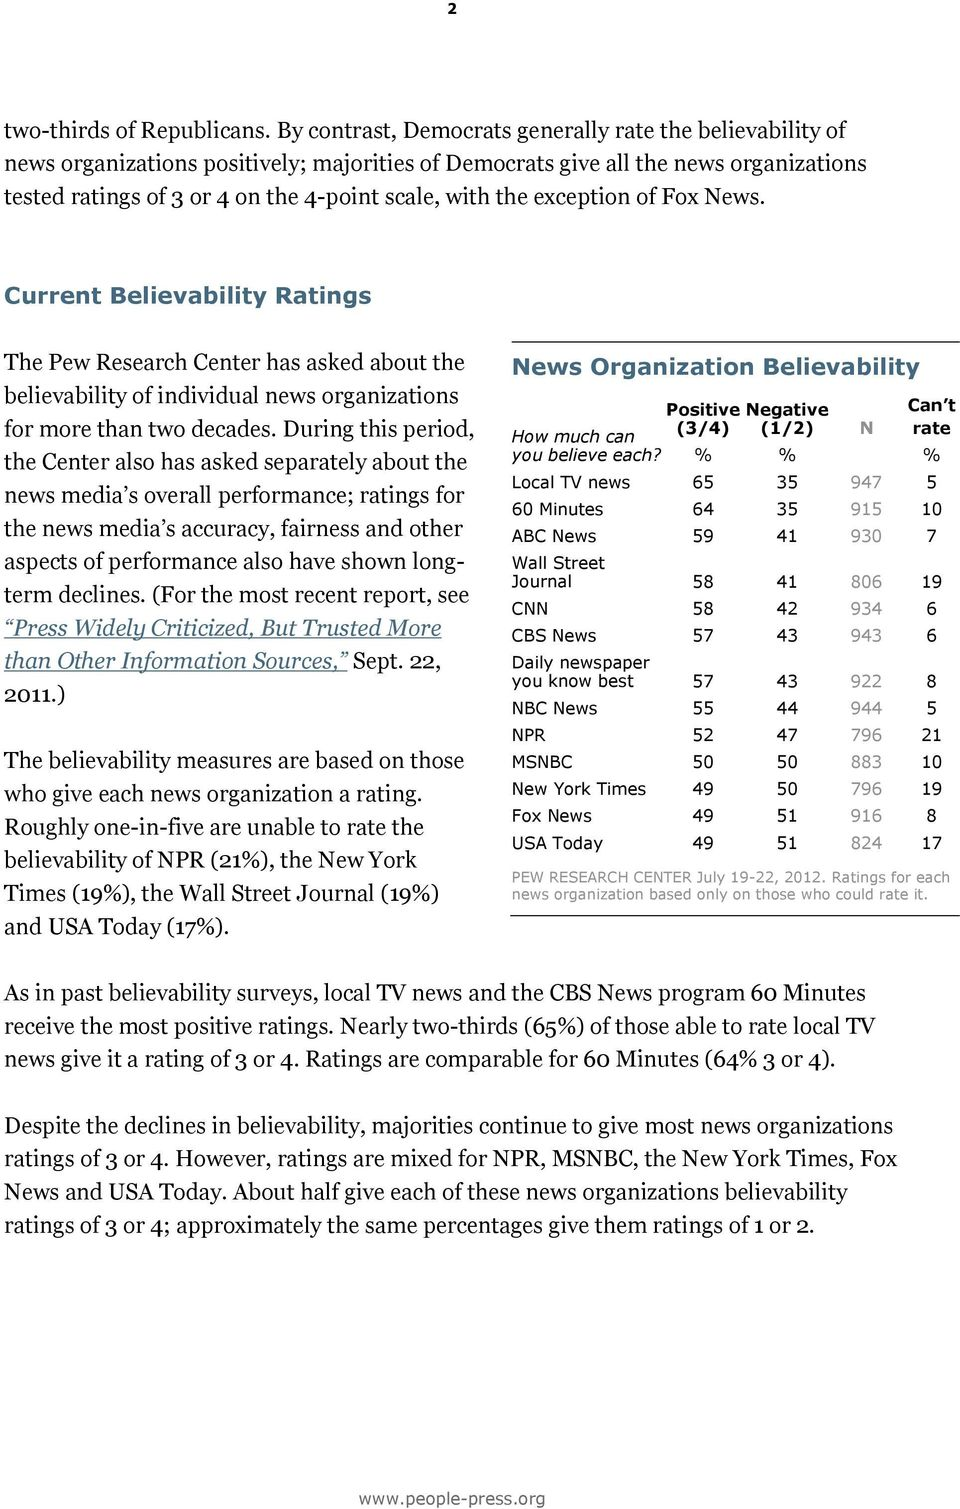 the exception of Fox News. Current Believability Ratings The Pew Research Center has asked about the believability of individual news organizations for more than two decades.